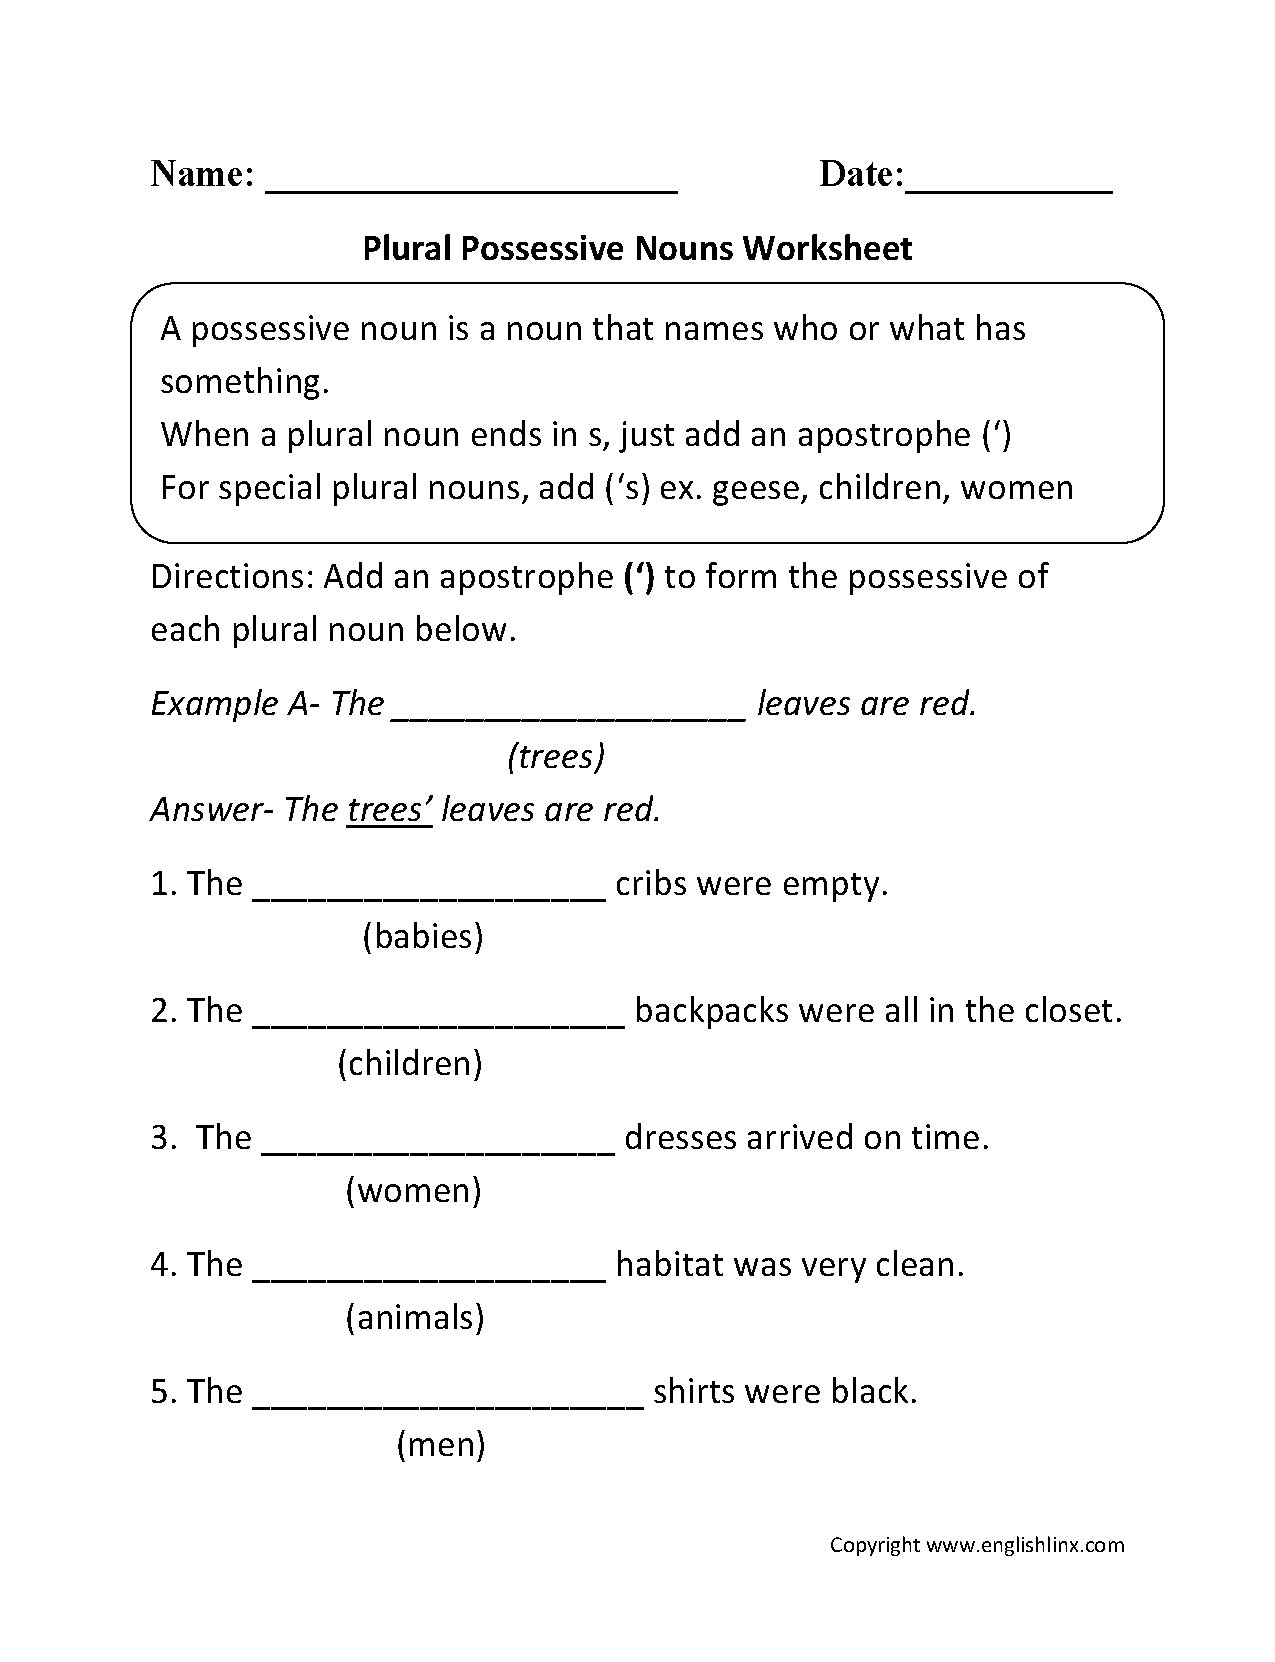 Aldiablosus  Marvelous Nouns Worksheets  Possessive Nouns Worksheets With Fetching Possessive Nouns Worksheets With Appealing Fraction Of Worksheets Also Free Printable Thermometer Worksheets In Addition Exercise English Grammar Worksheet And Math Worksheets Grade  Printable As Well As Worksheets For Grade  Additionally Body Hygiene Worksheets From Englishlinxcom With Aldiablosus  Fetching Nouns Worksheets  Possessive Nouns Worksheets With Appealing Possessive Nouns Worksheets And Marvelous Fraction Of Worksheets Also Free Printable Thermometer Worksheets In Addition Exercise English Grammar Worksheet From Englishlinxcom